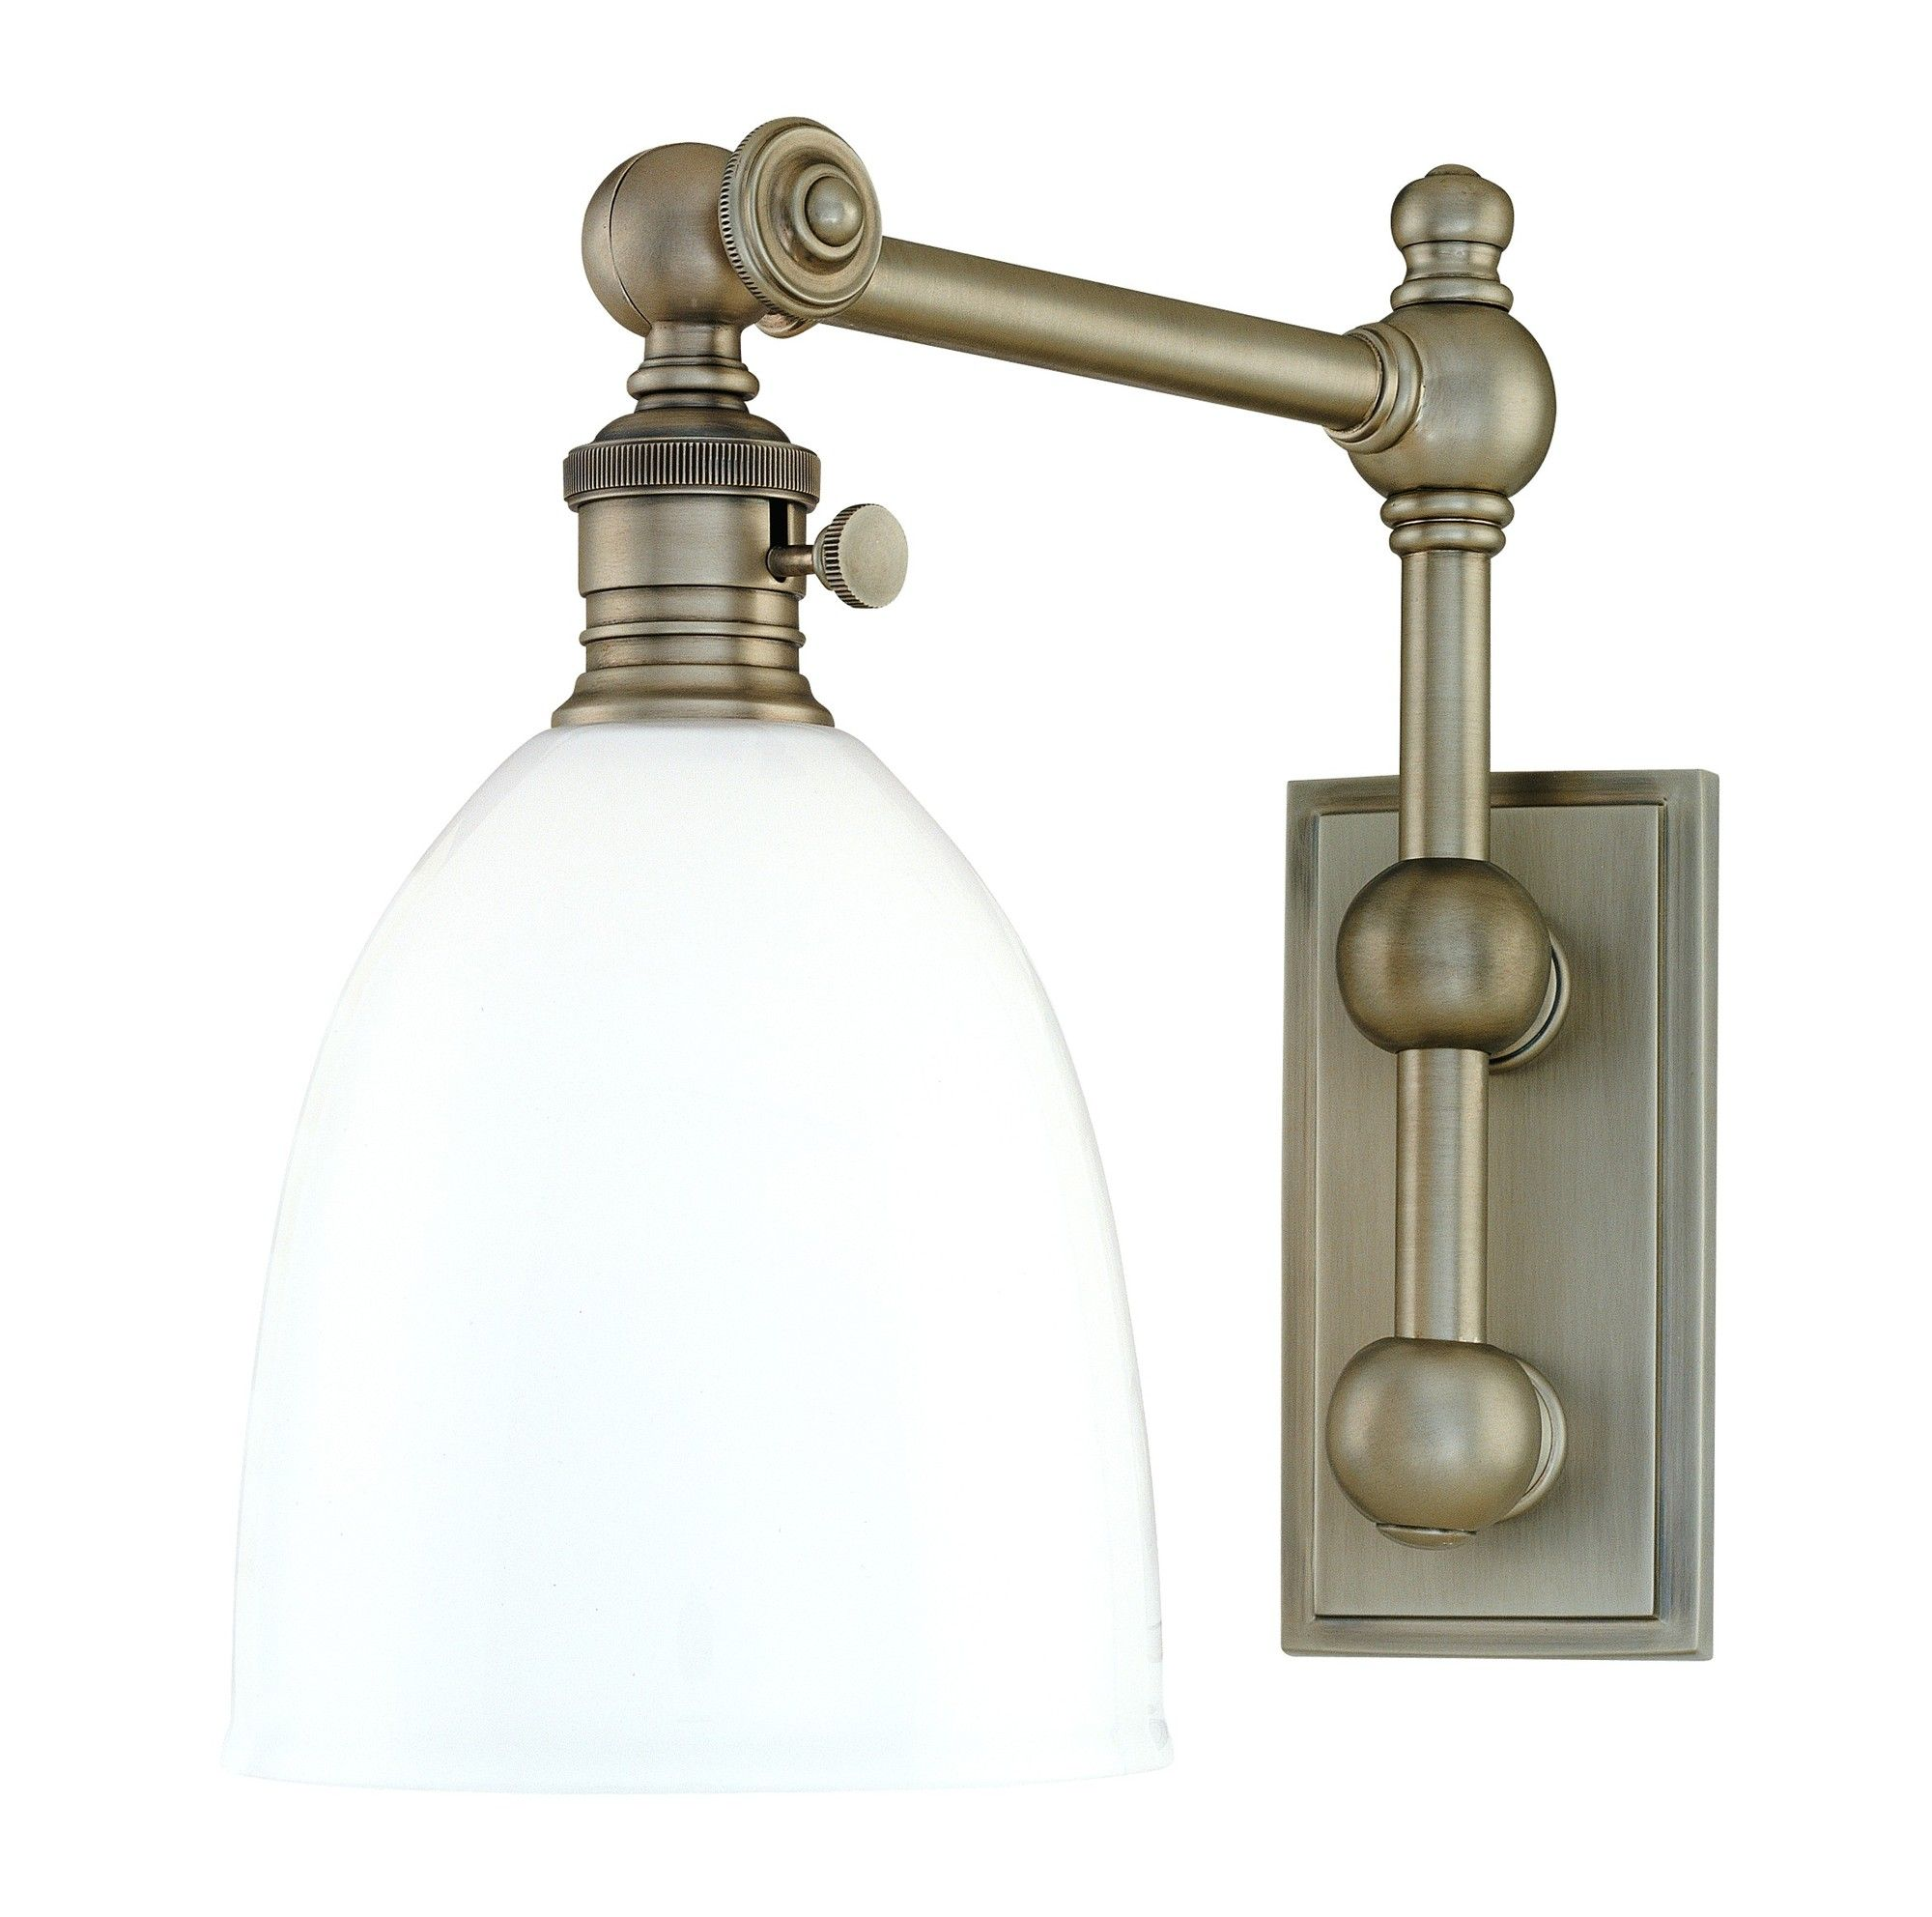 Monroe Swing Arm Wall Lamp Wayfair kitchen inspiration Pinterest More Swing arm wall ...